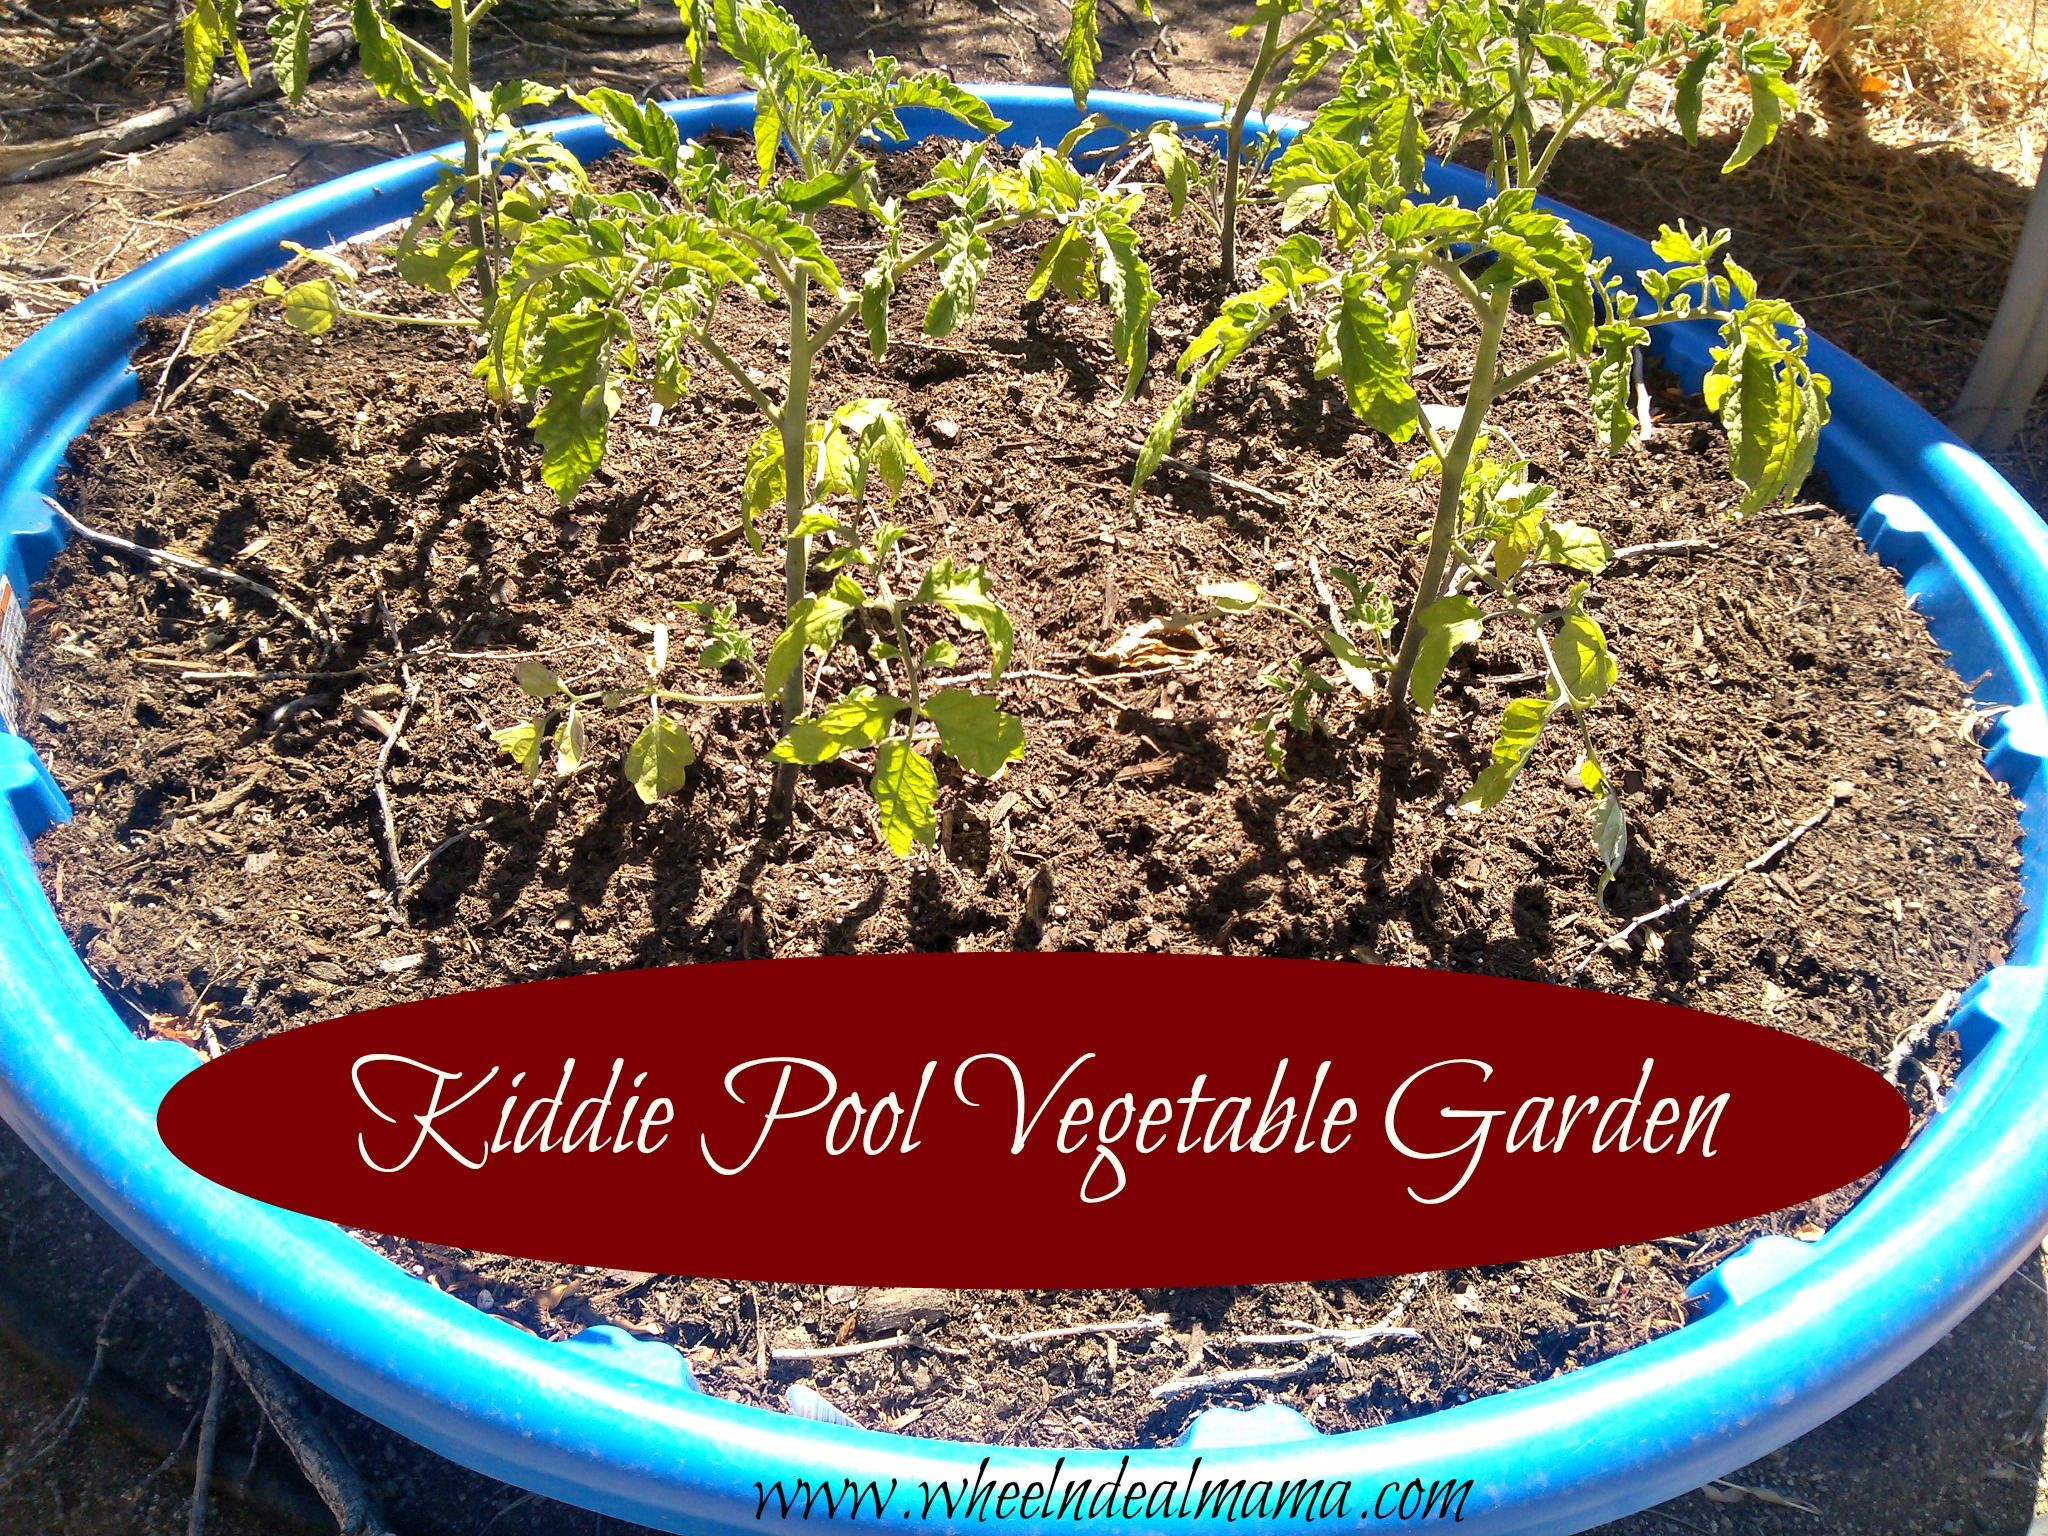 do-it-yourself: kiddie pool vegetable garden! | frugal and money